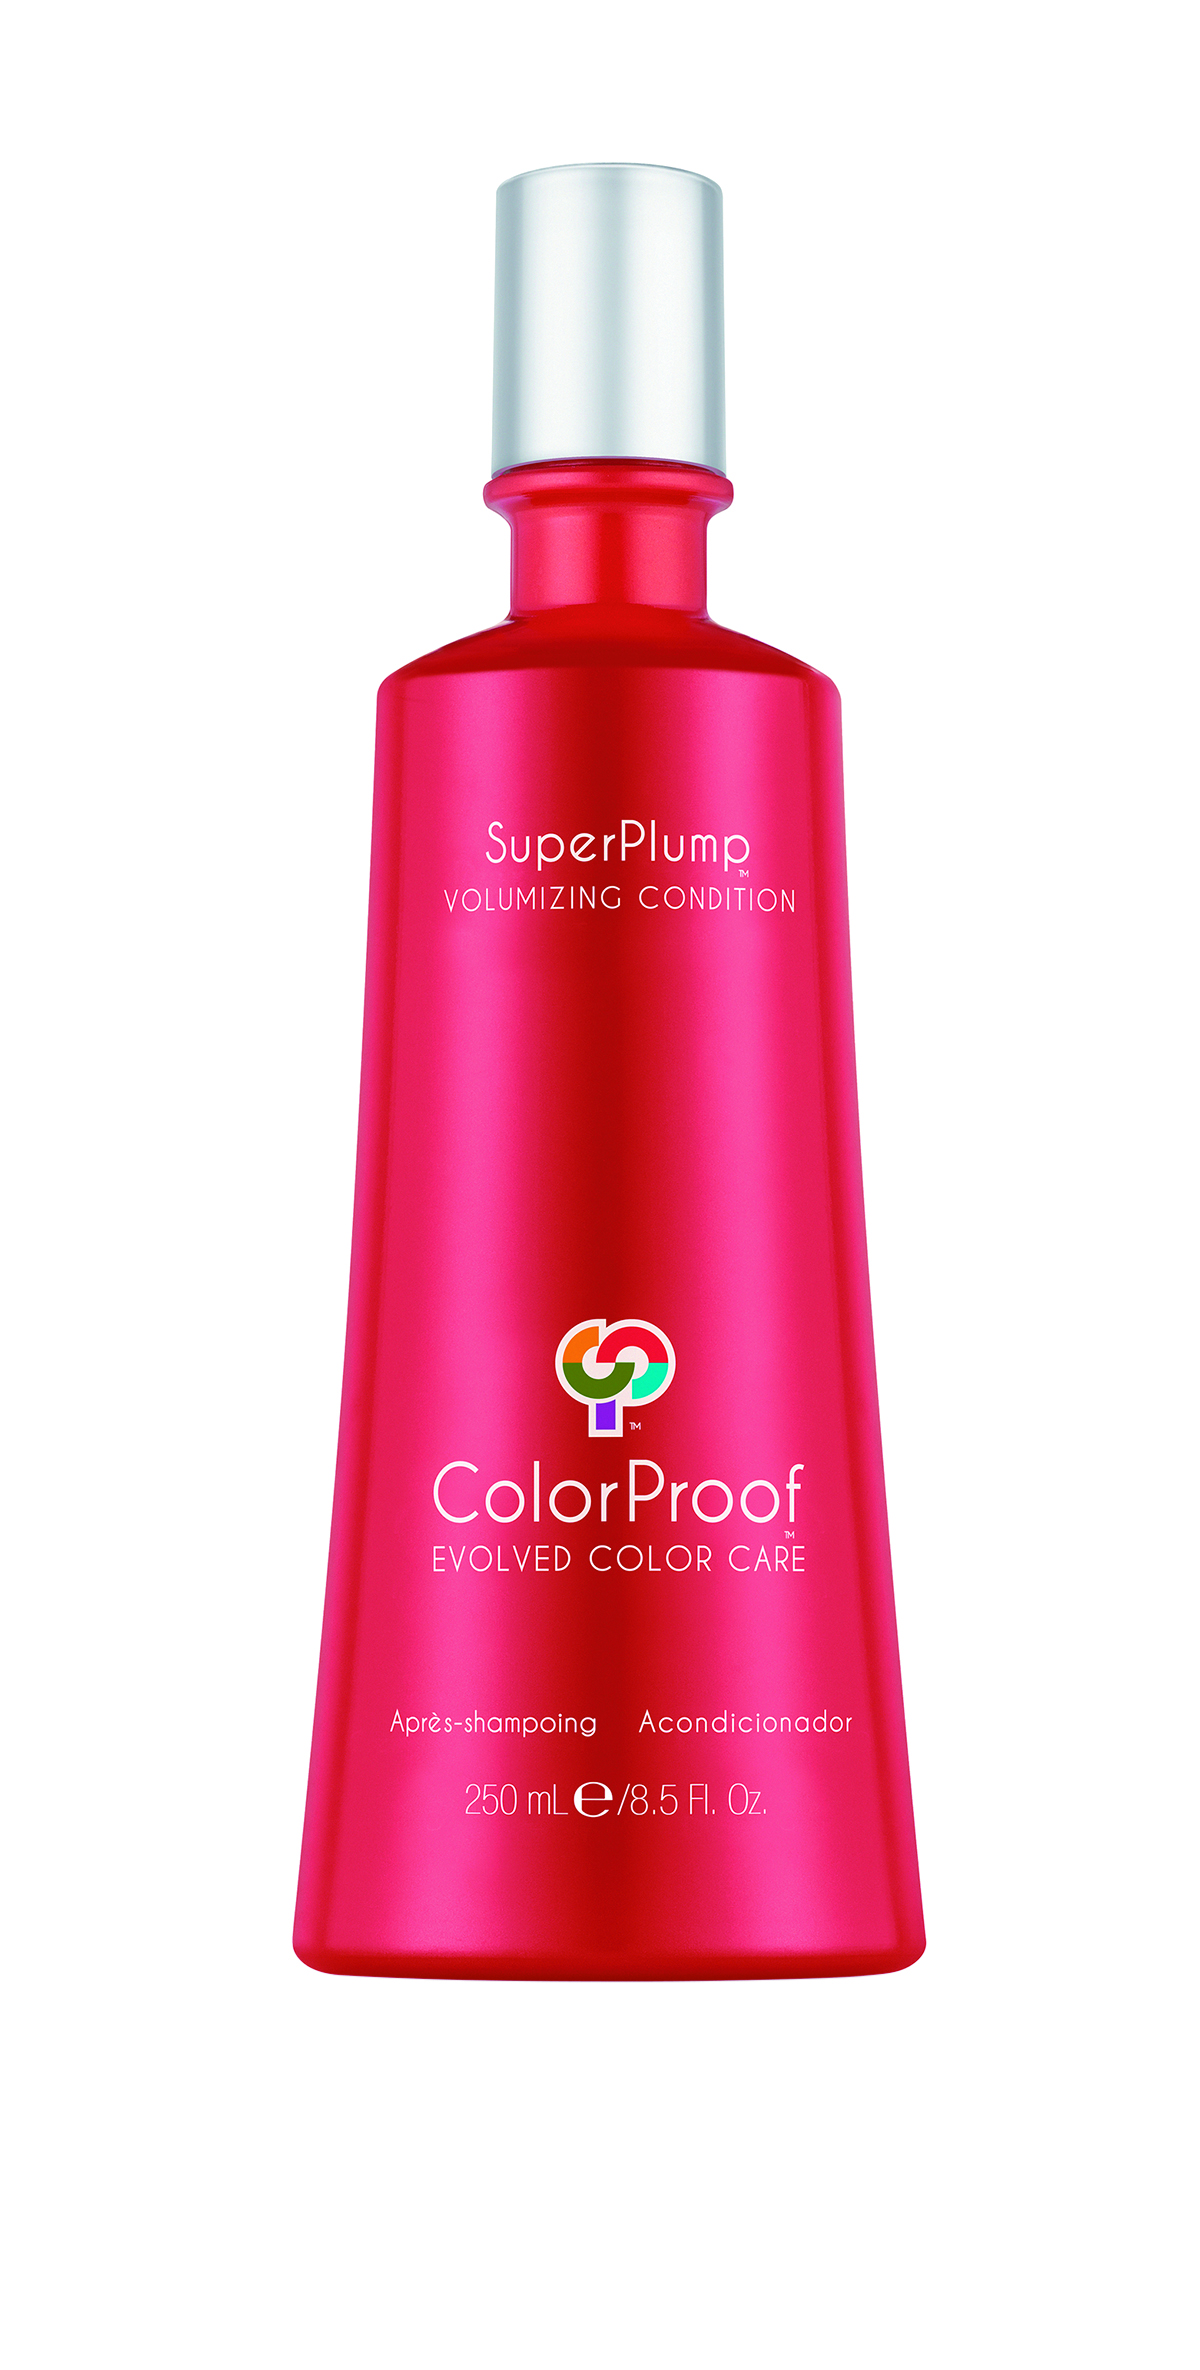 ColorProof Super Plump Volumizing Condition provides feather-light volume and conditioning, while prolonging color life and vibrancy.